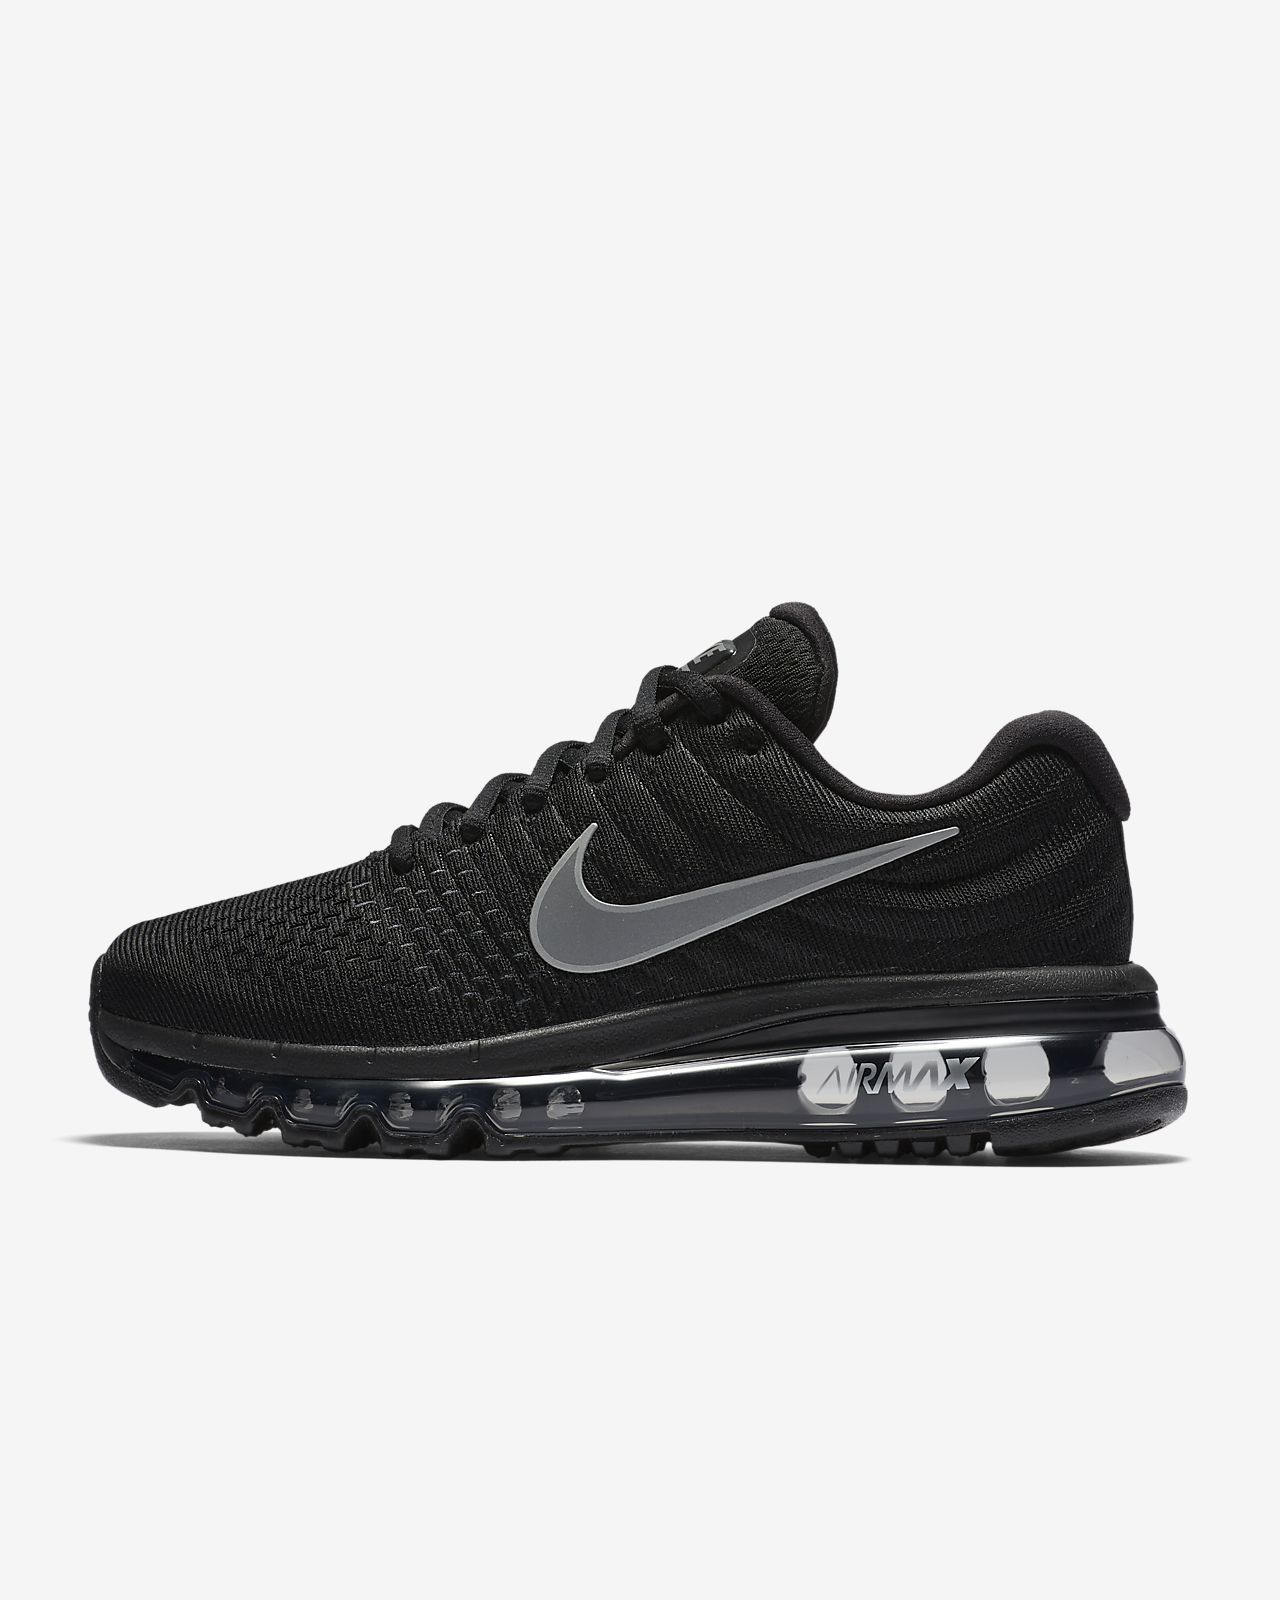 nike air max 2017 original price in india